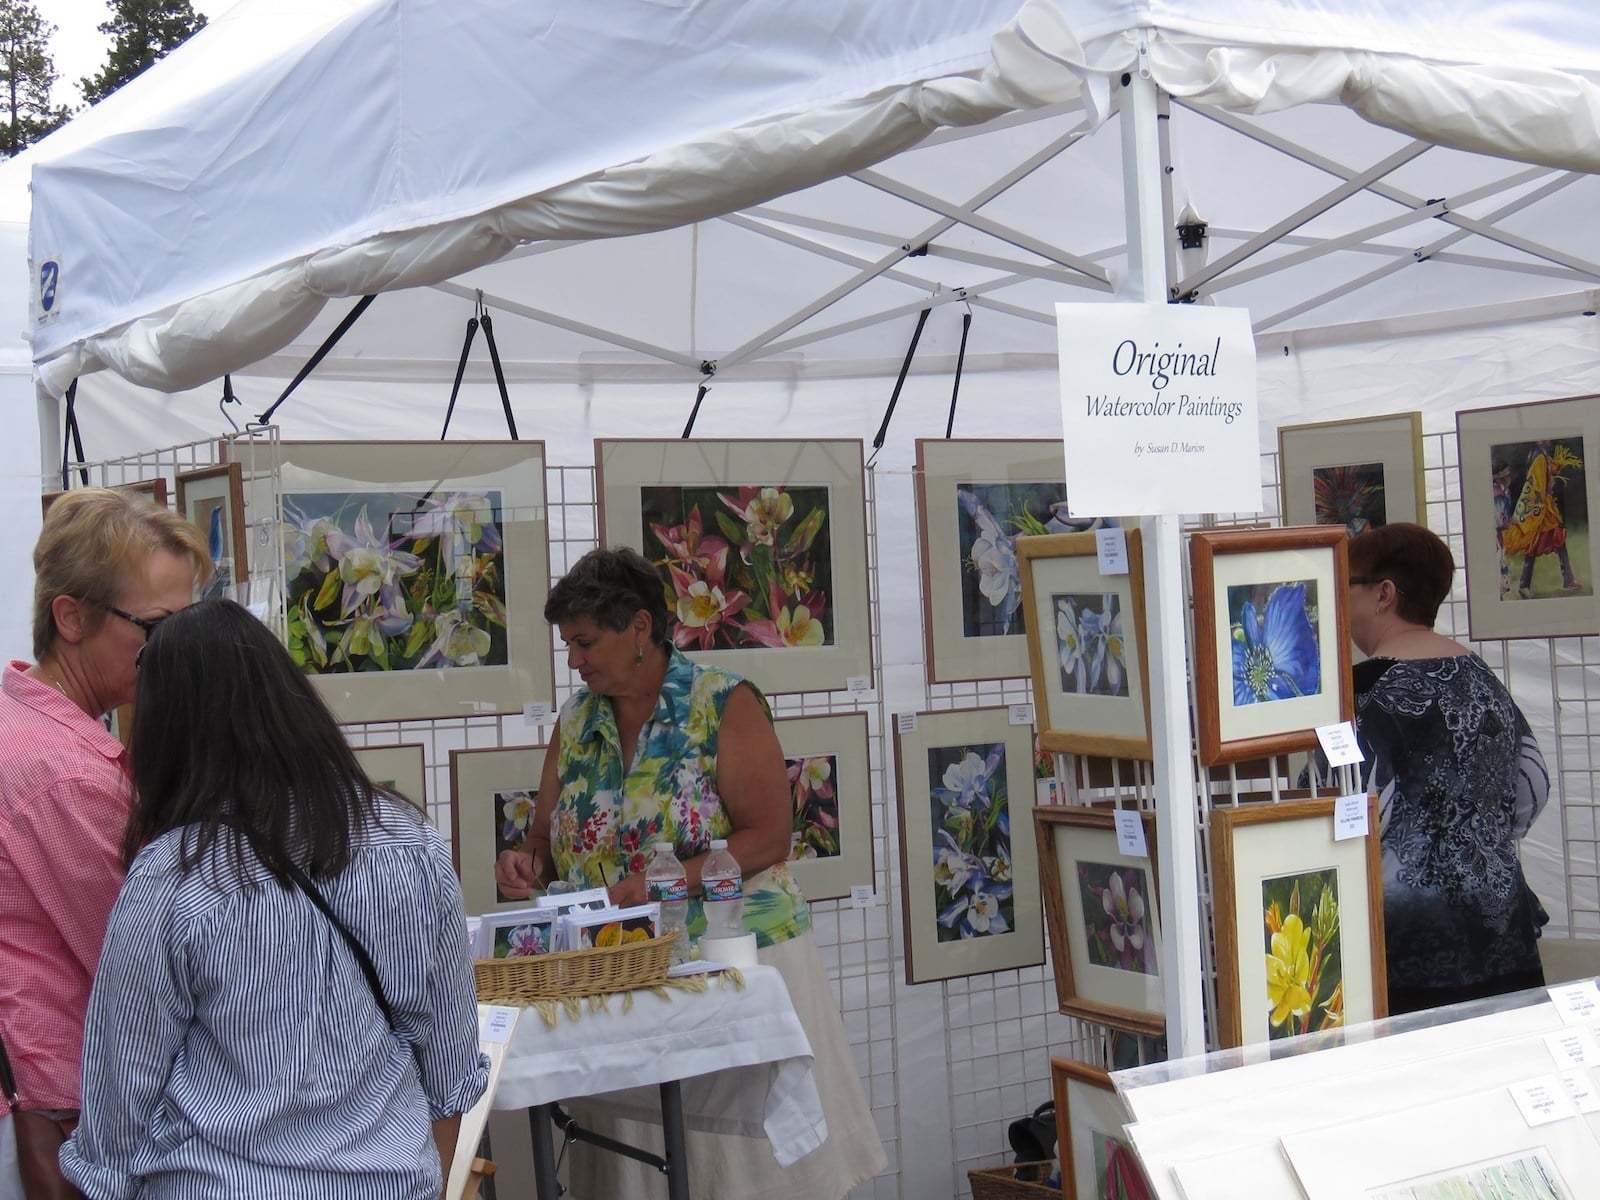 Image of a watercolor painting stall at the Mountain Arts Festival in Woodland Park, Colorado